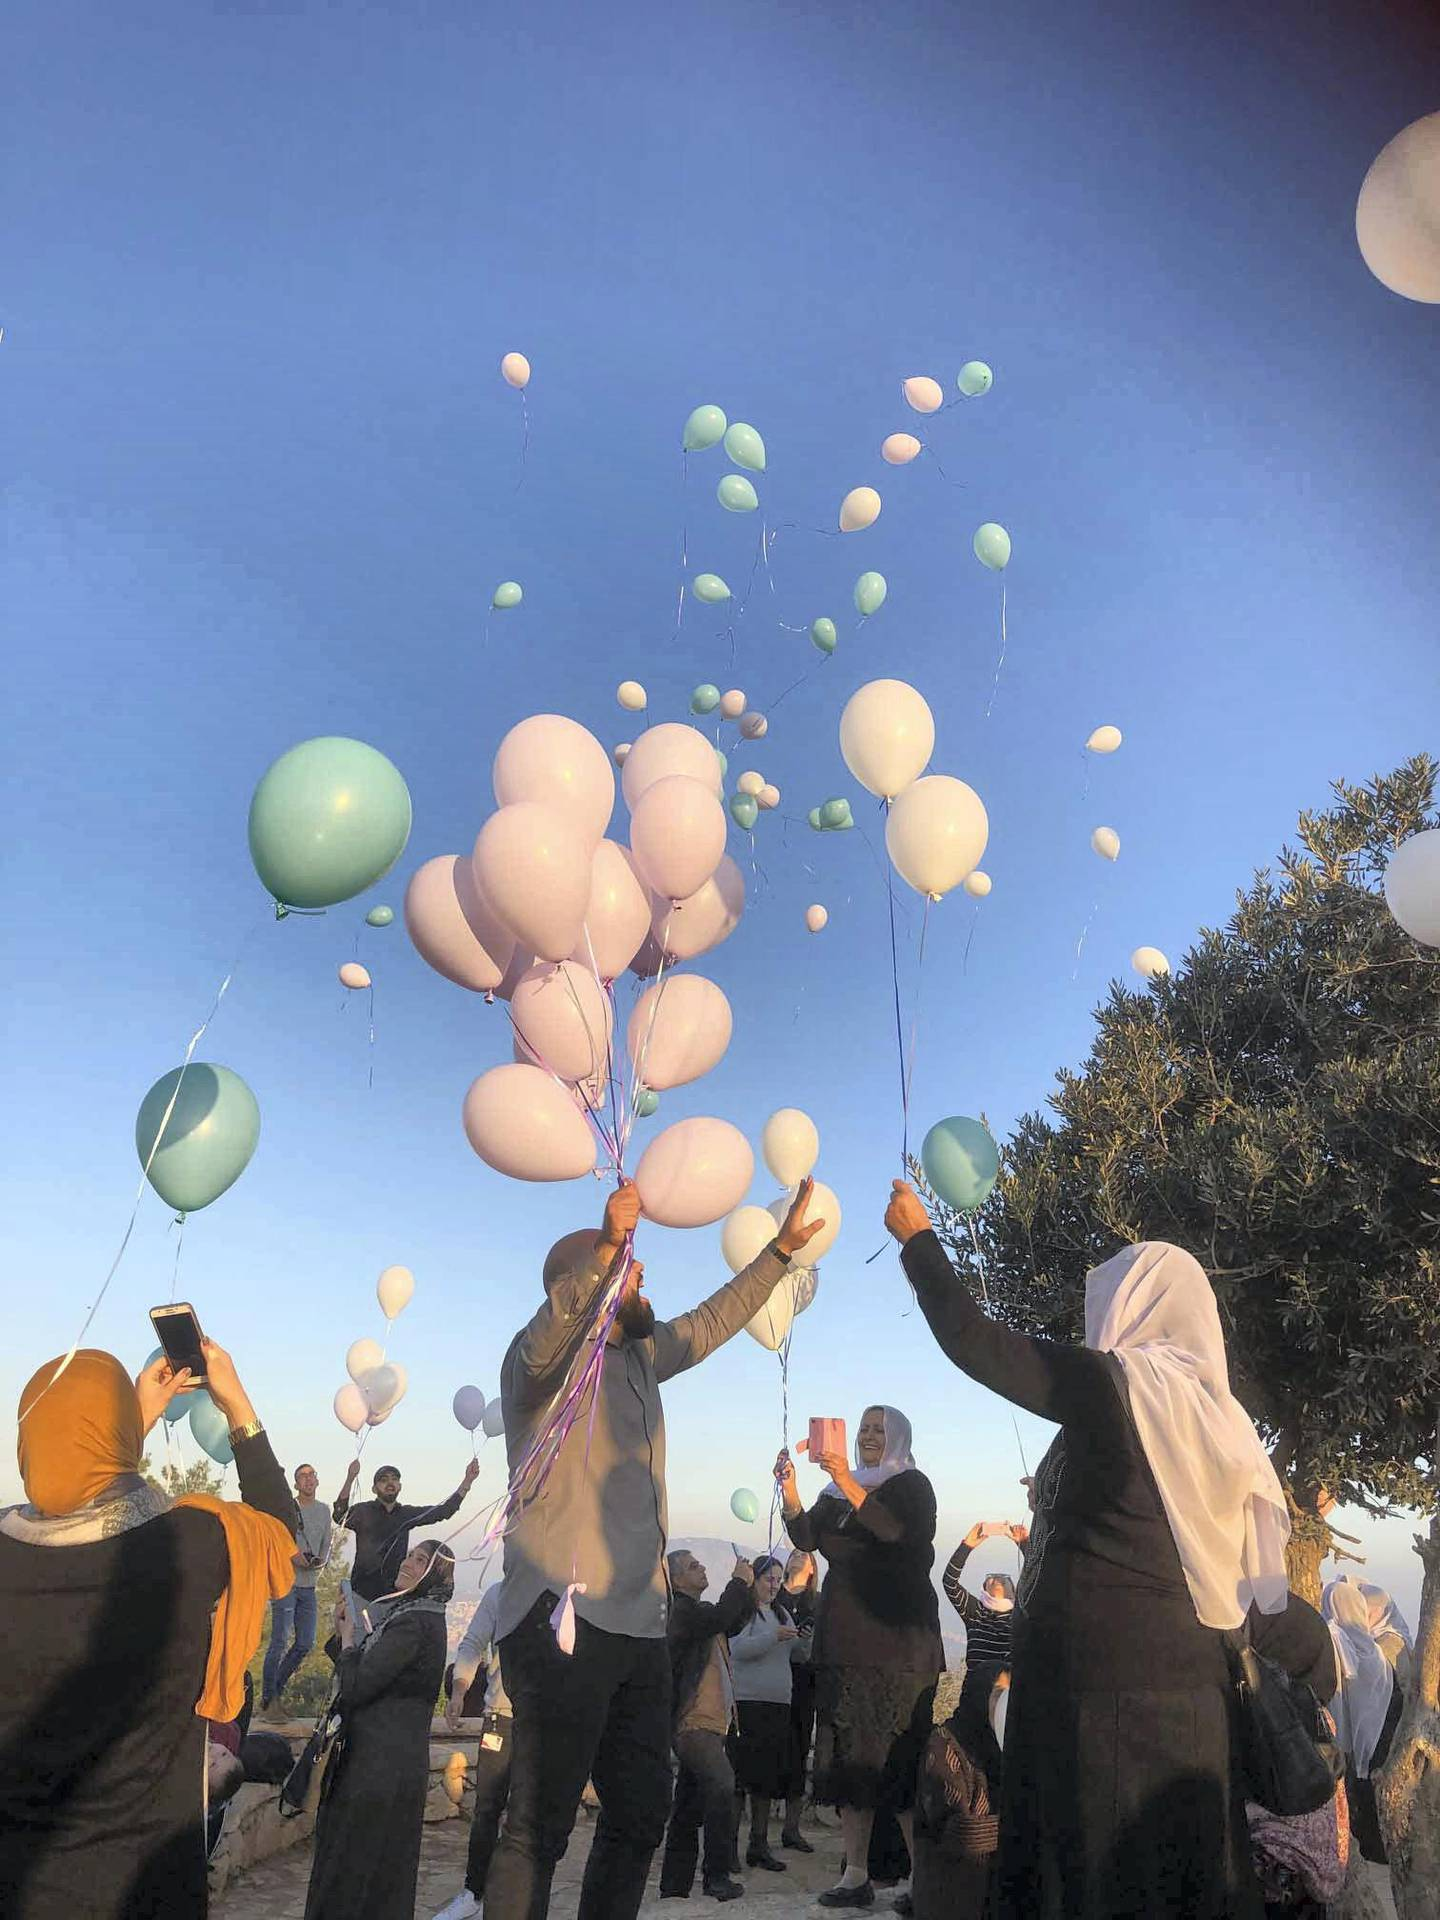 Many Muslims, Christians, Jews and Druze travelled up to Mount Precipice to release hundreds of balloons for peace after breaking bread together in Nazareth last week. Courtesy Rashmee Roshan Lall